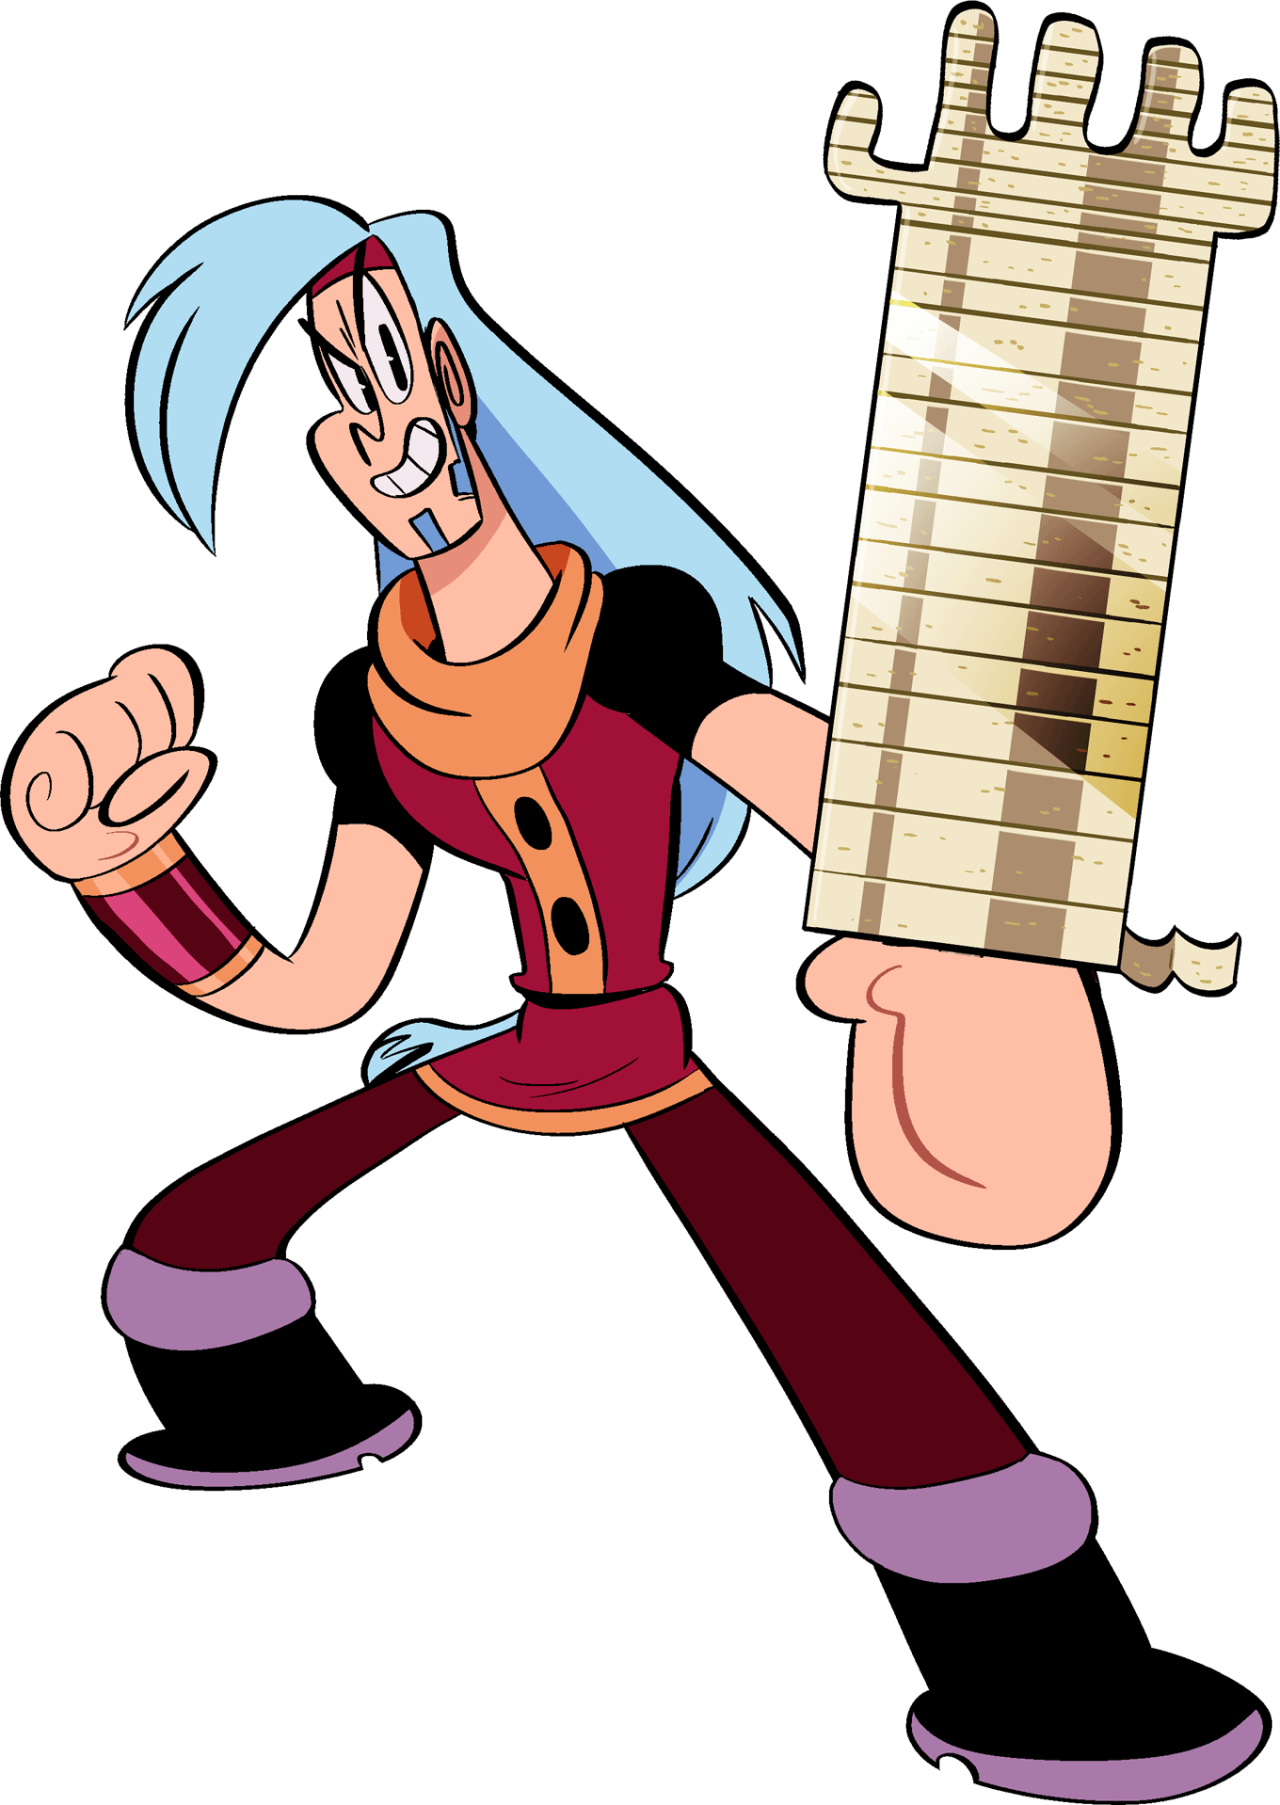 Prohyas Warrior | TV Shows | Pinterest | Mighty magiswords, Cartoon ...